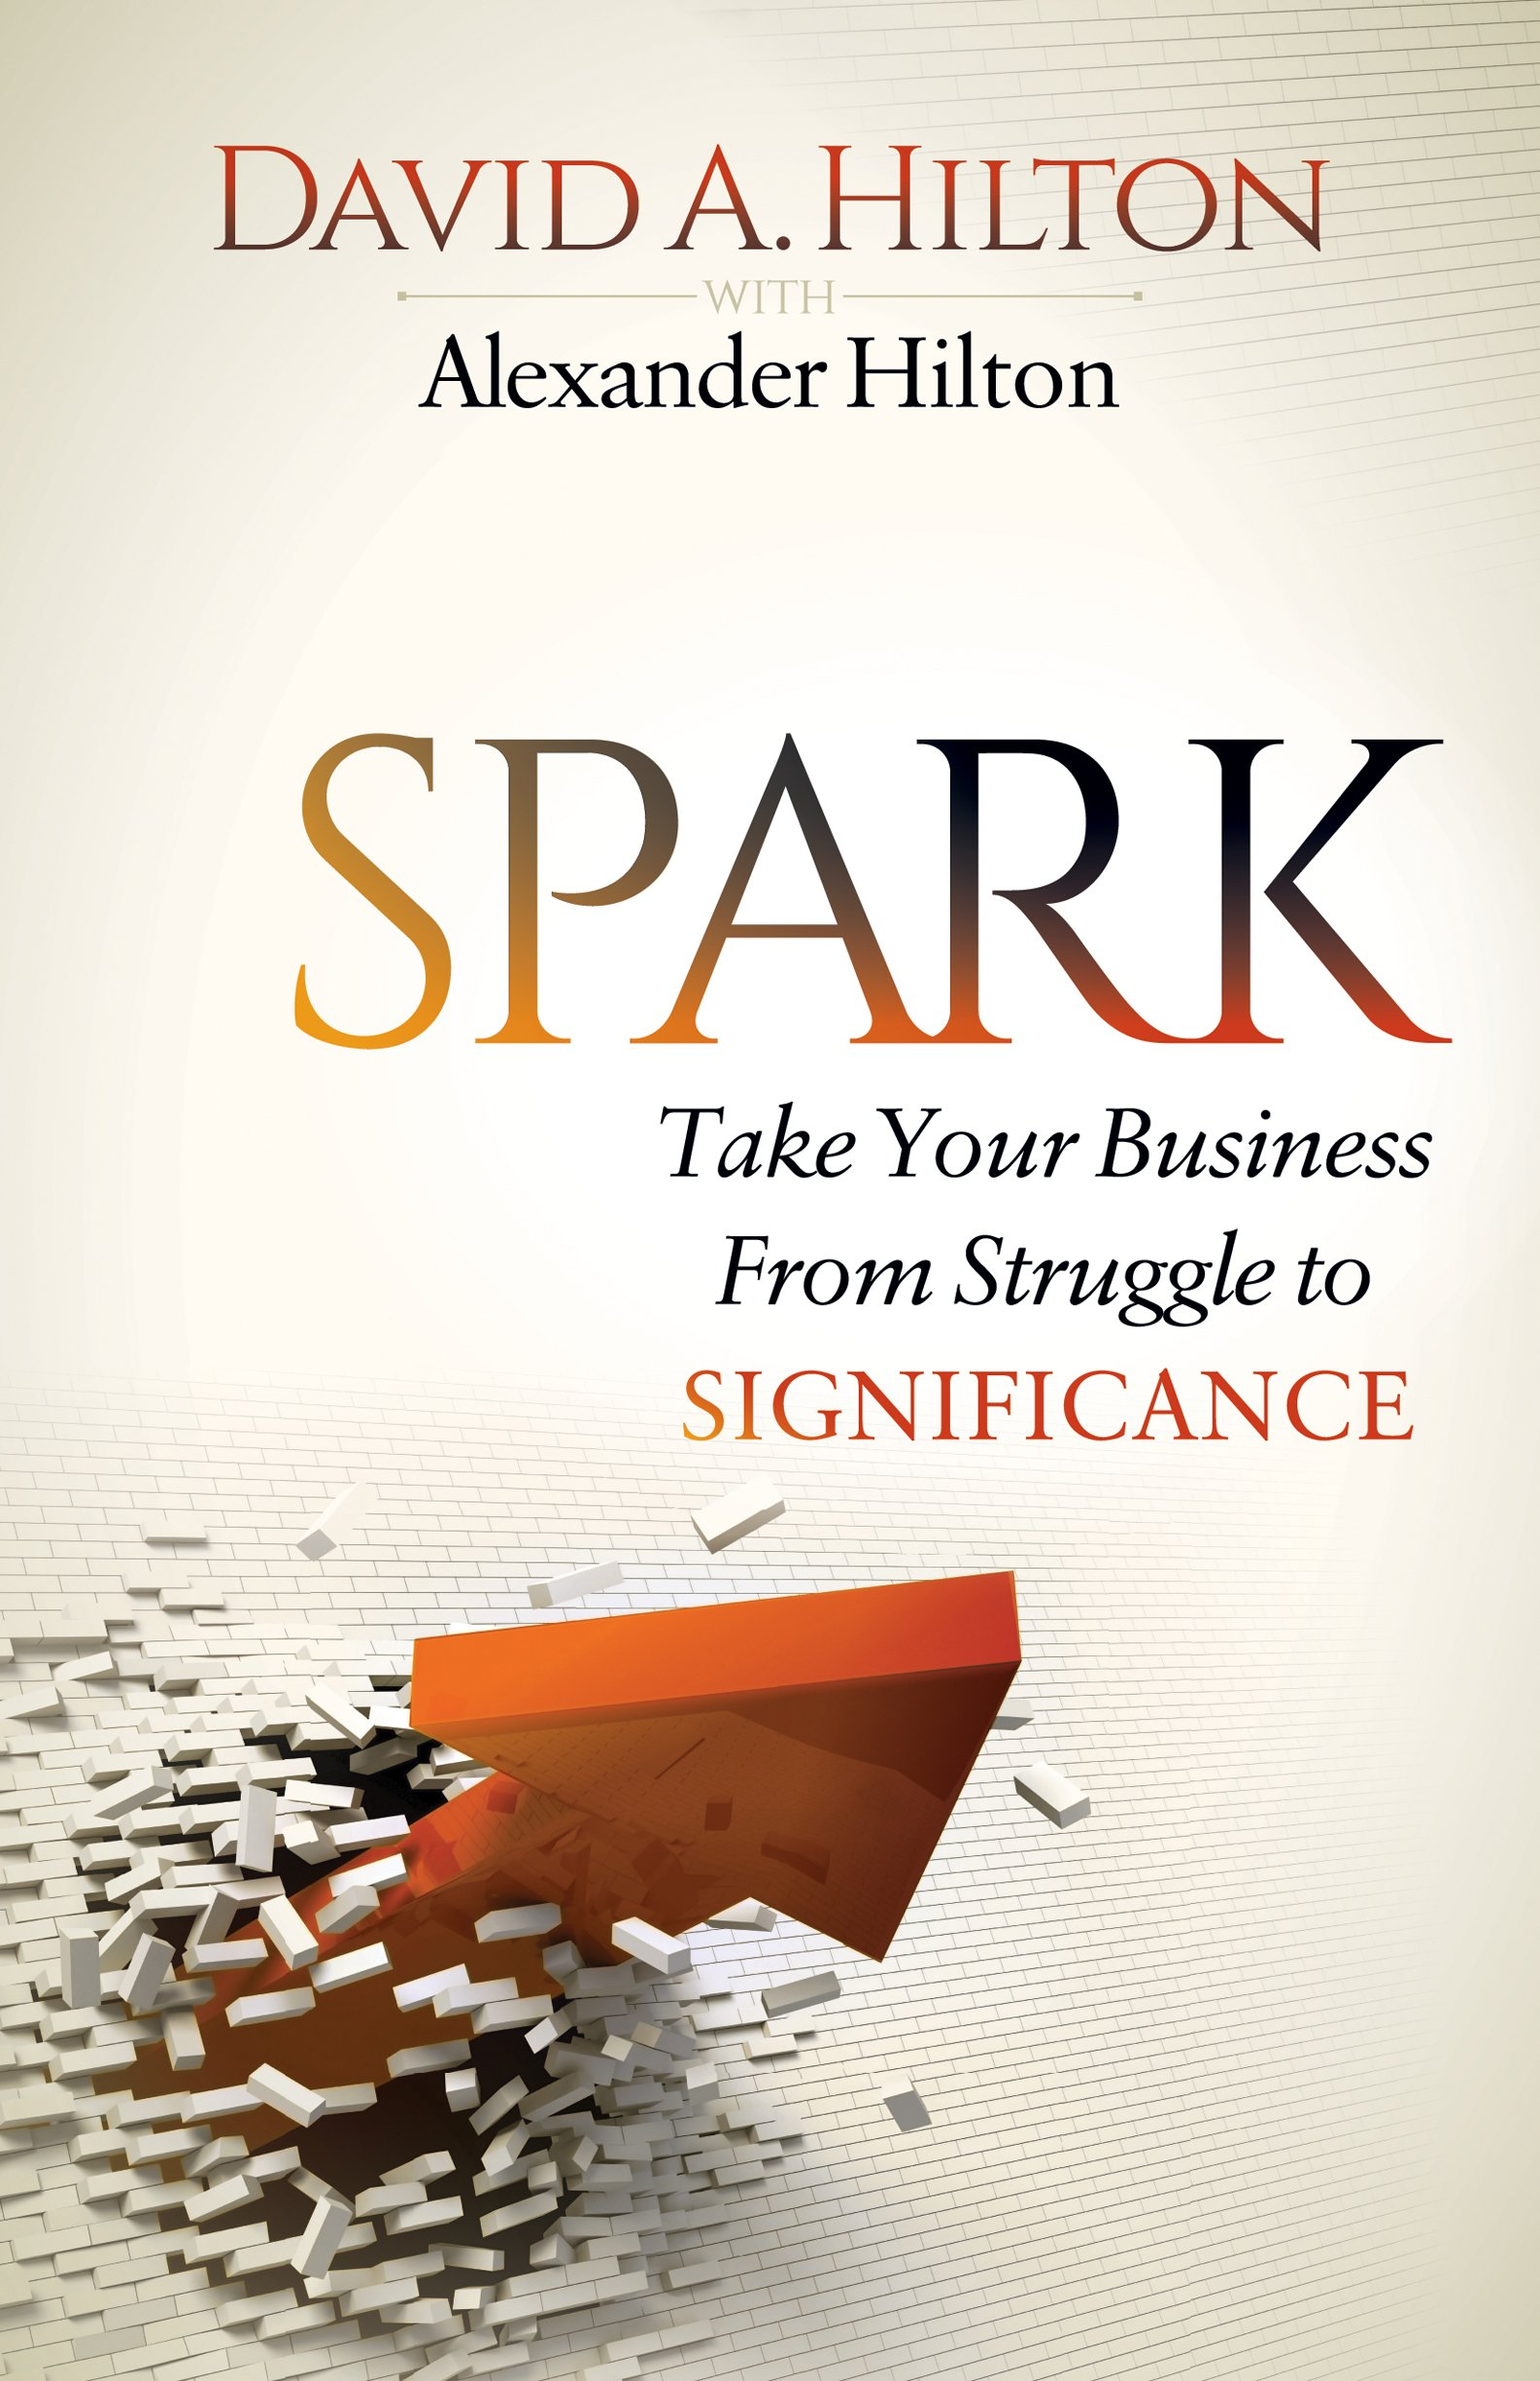 Spark: Take Your Business From Struggle to Significance PDF